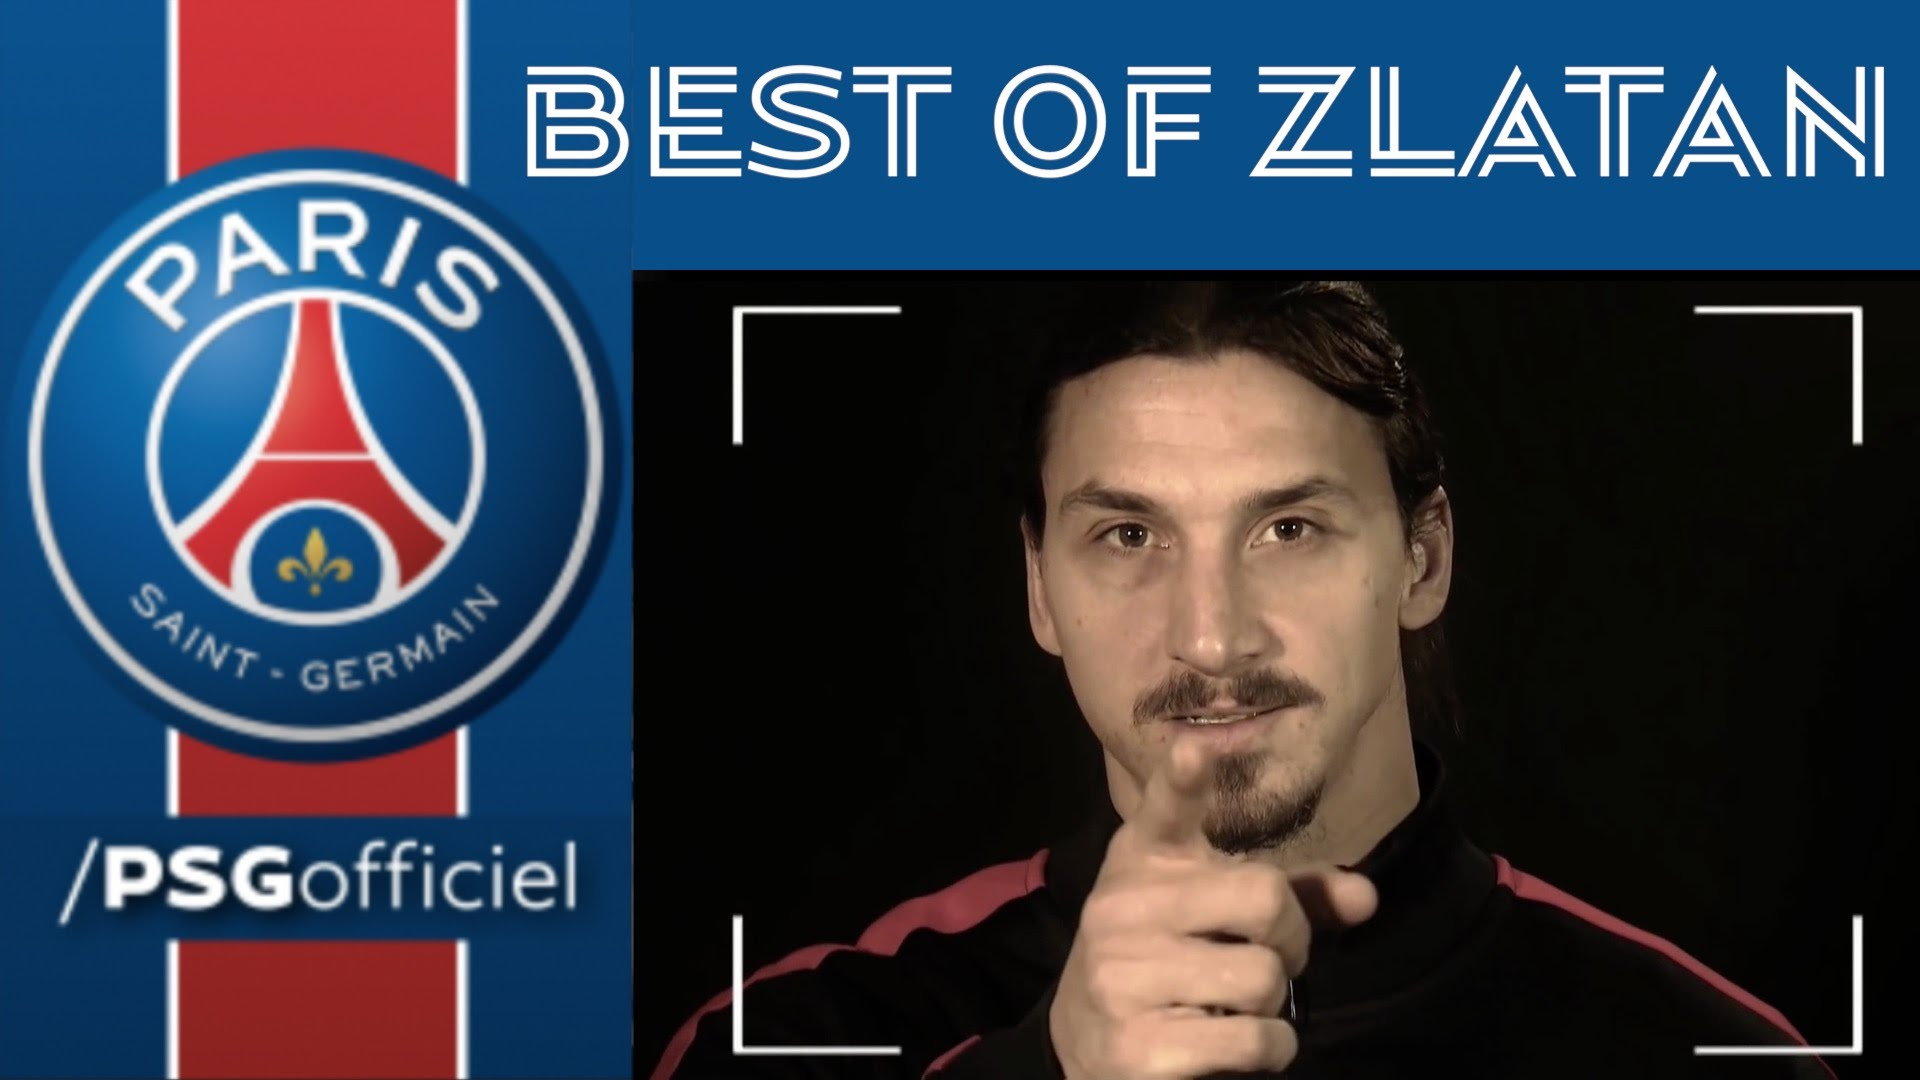 LA Galaxy announce signing of soccer superstar Zlatan Ibrahimovic - AXS 22a4de5c35eb5